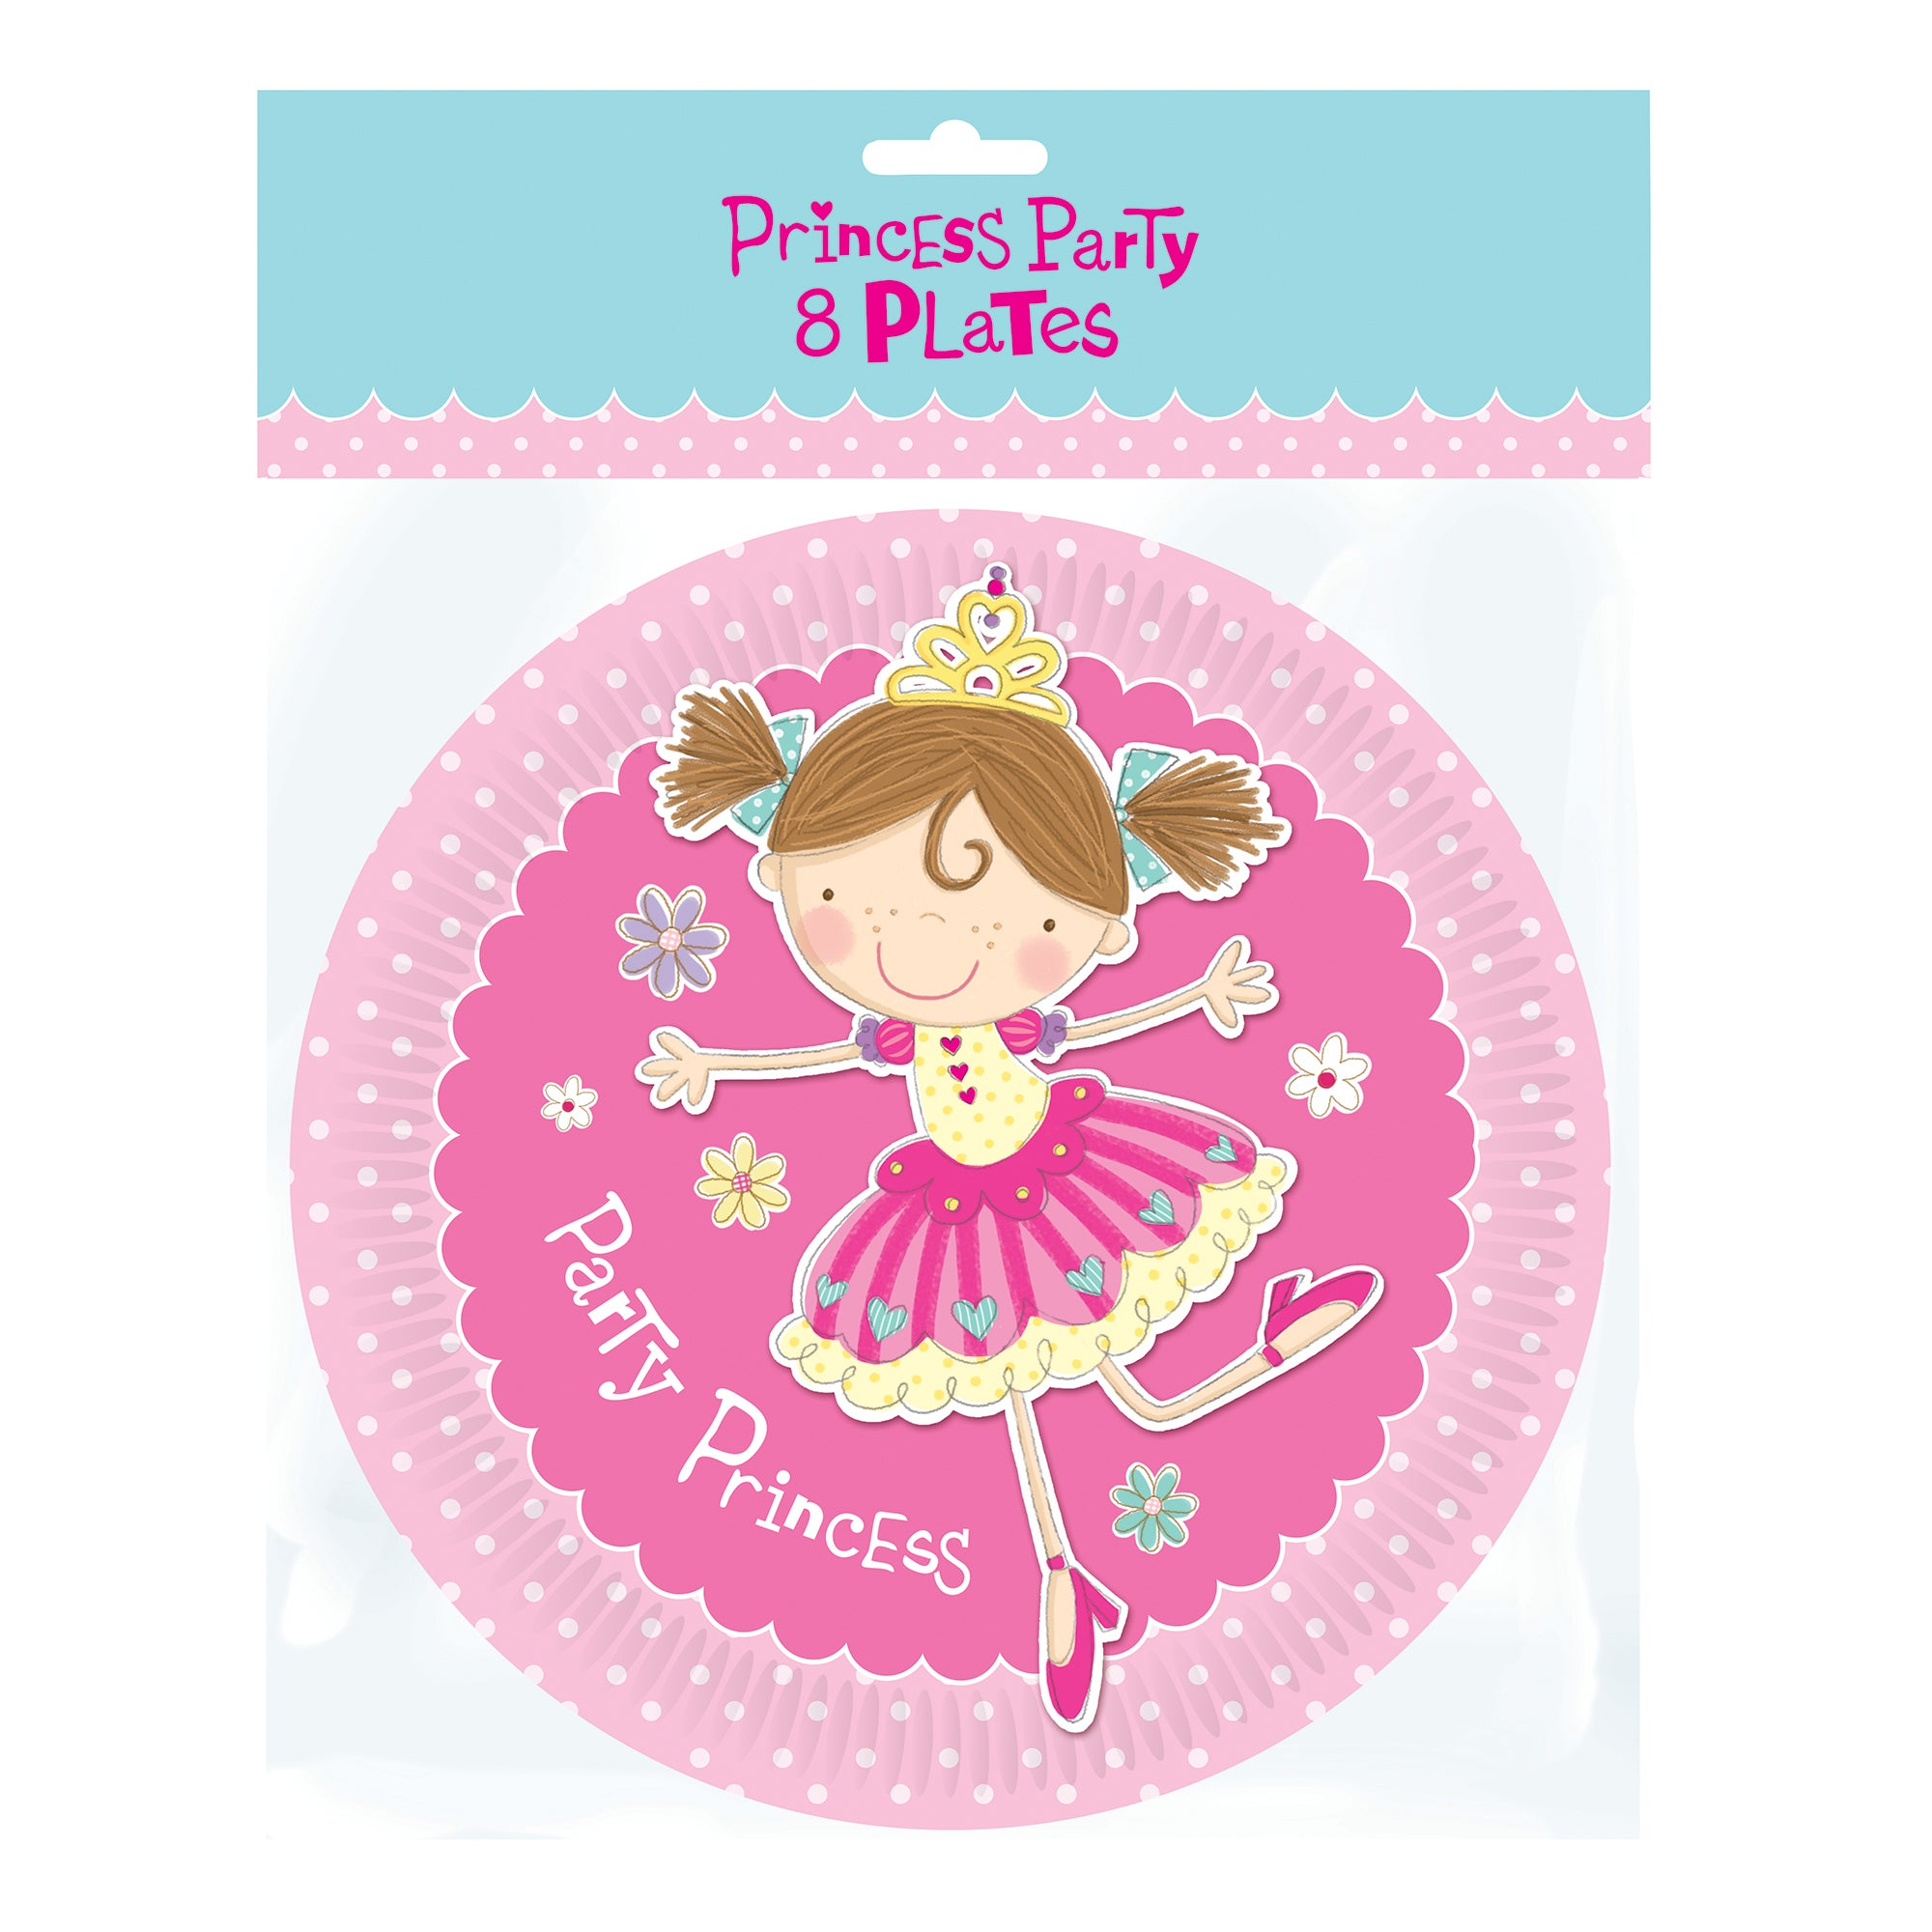 Princess Party Pack of 8 Plates